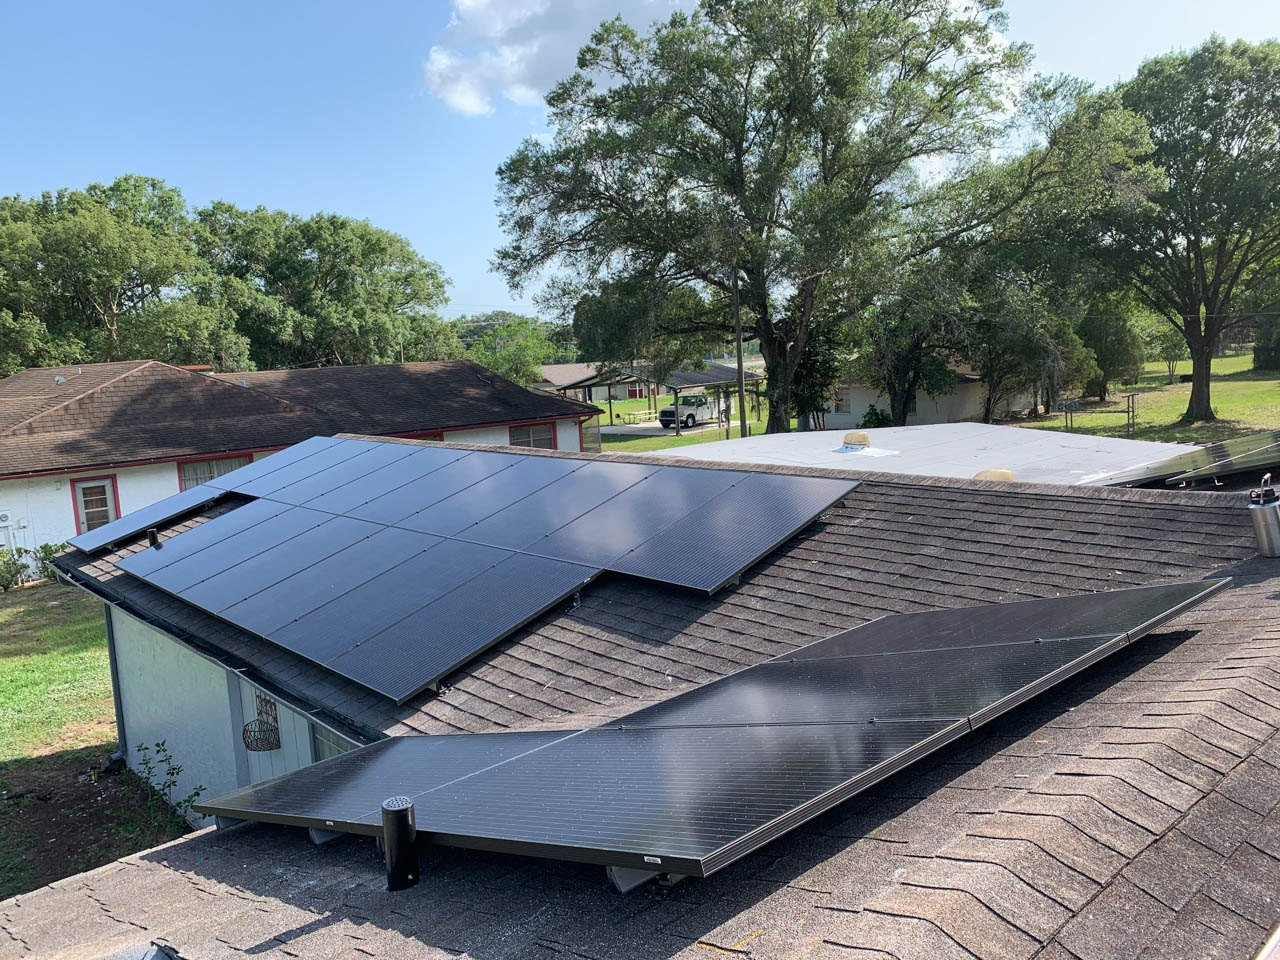 Roof view of a solar installation on a shingle roof in Thonotosassa, FL